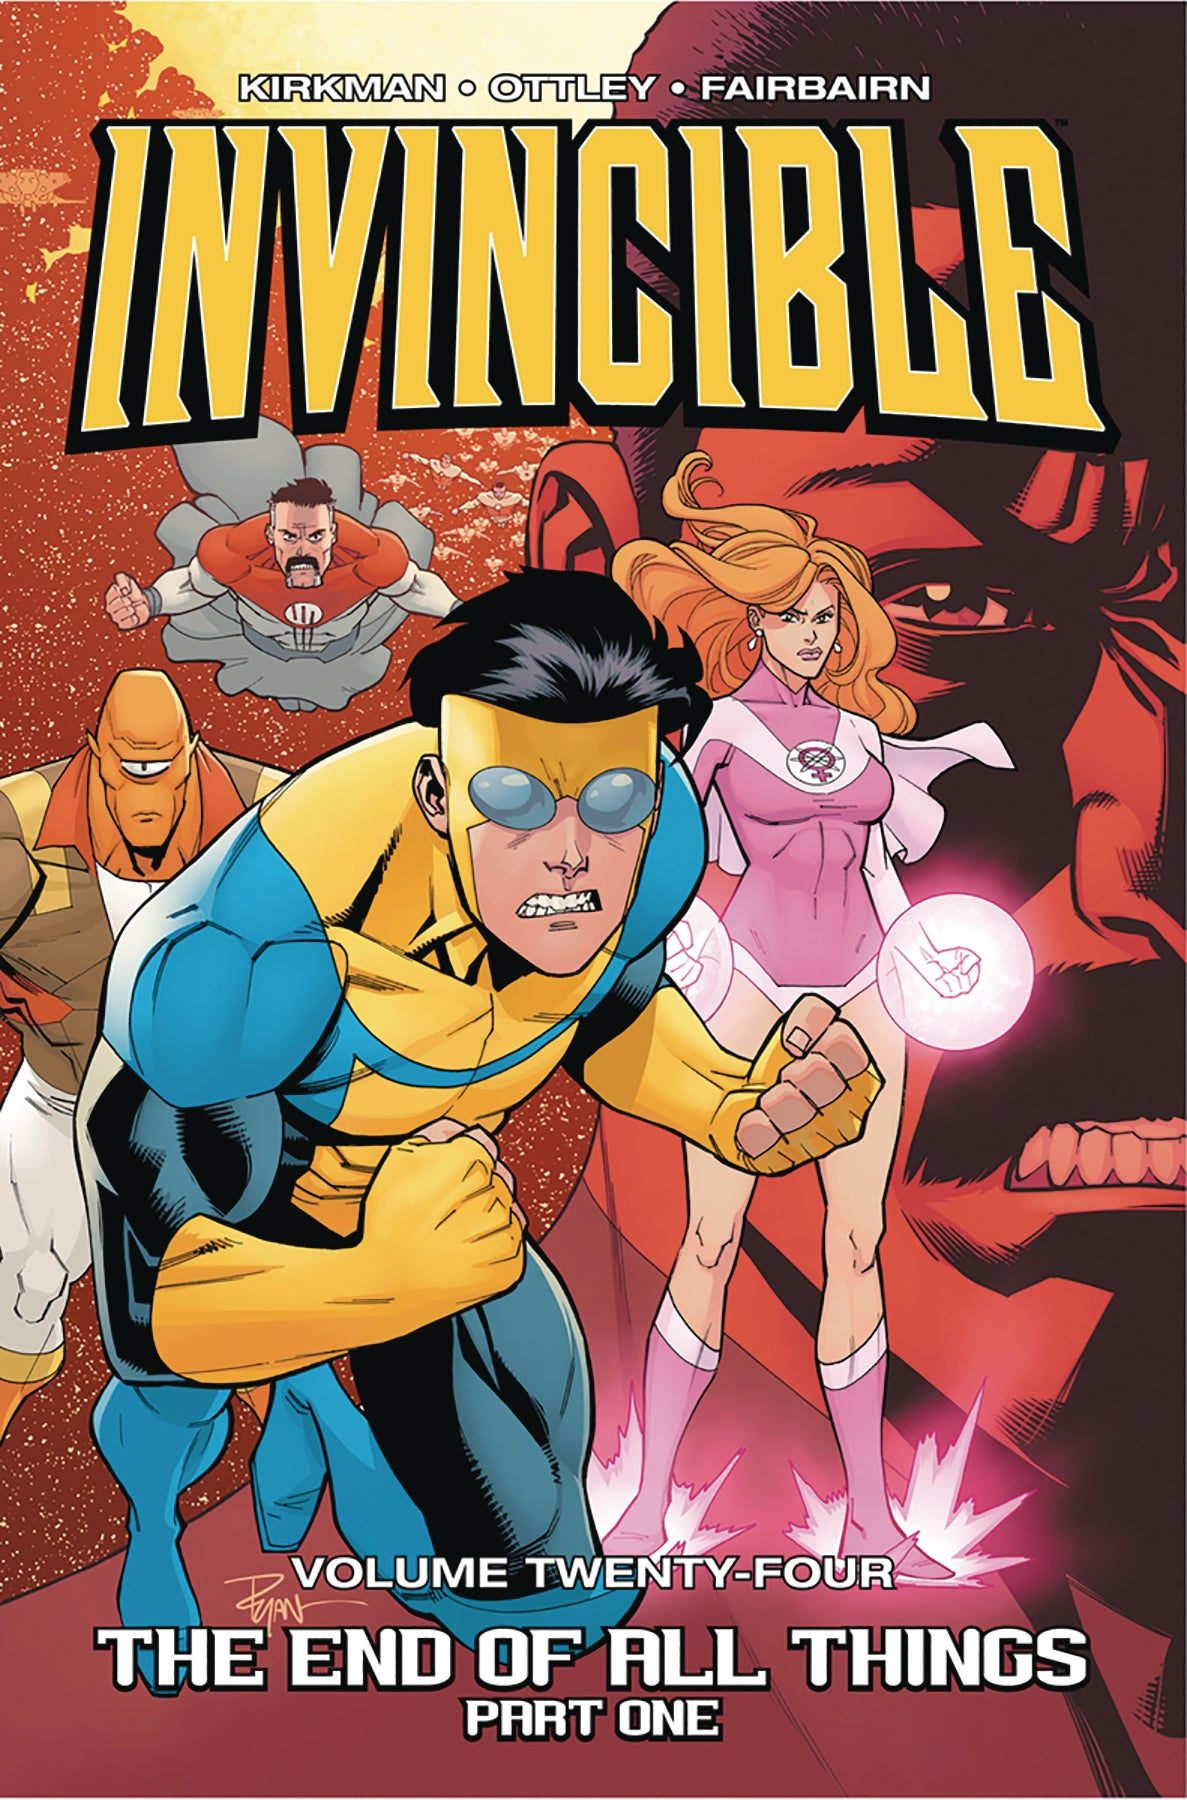 INVINCIBLE TP VOL 24 END OF ALL THINGS PART 1 (MR)